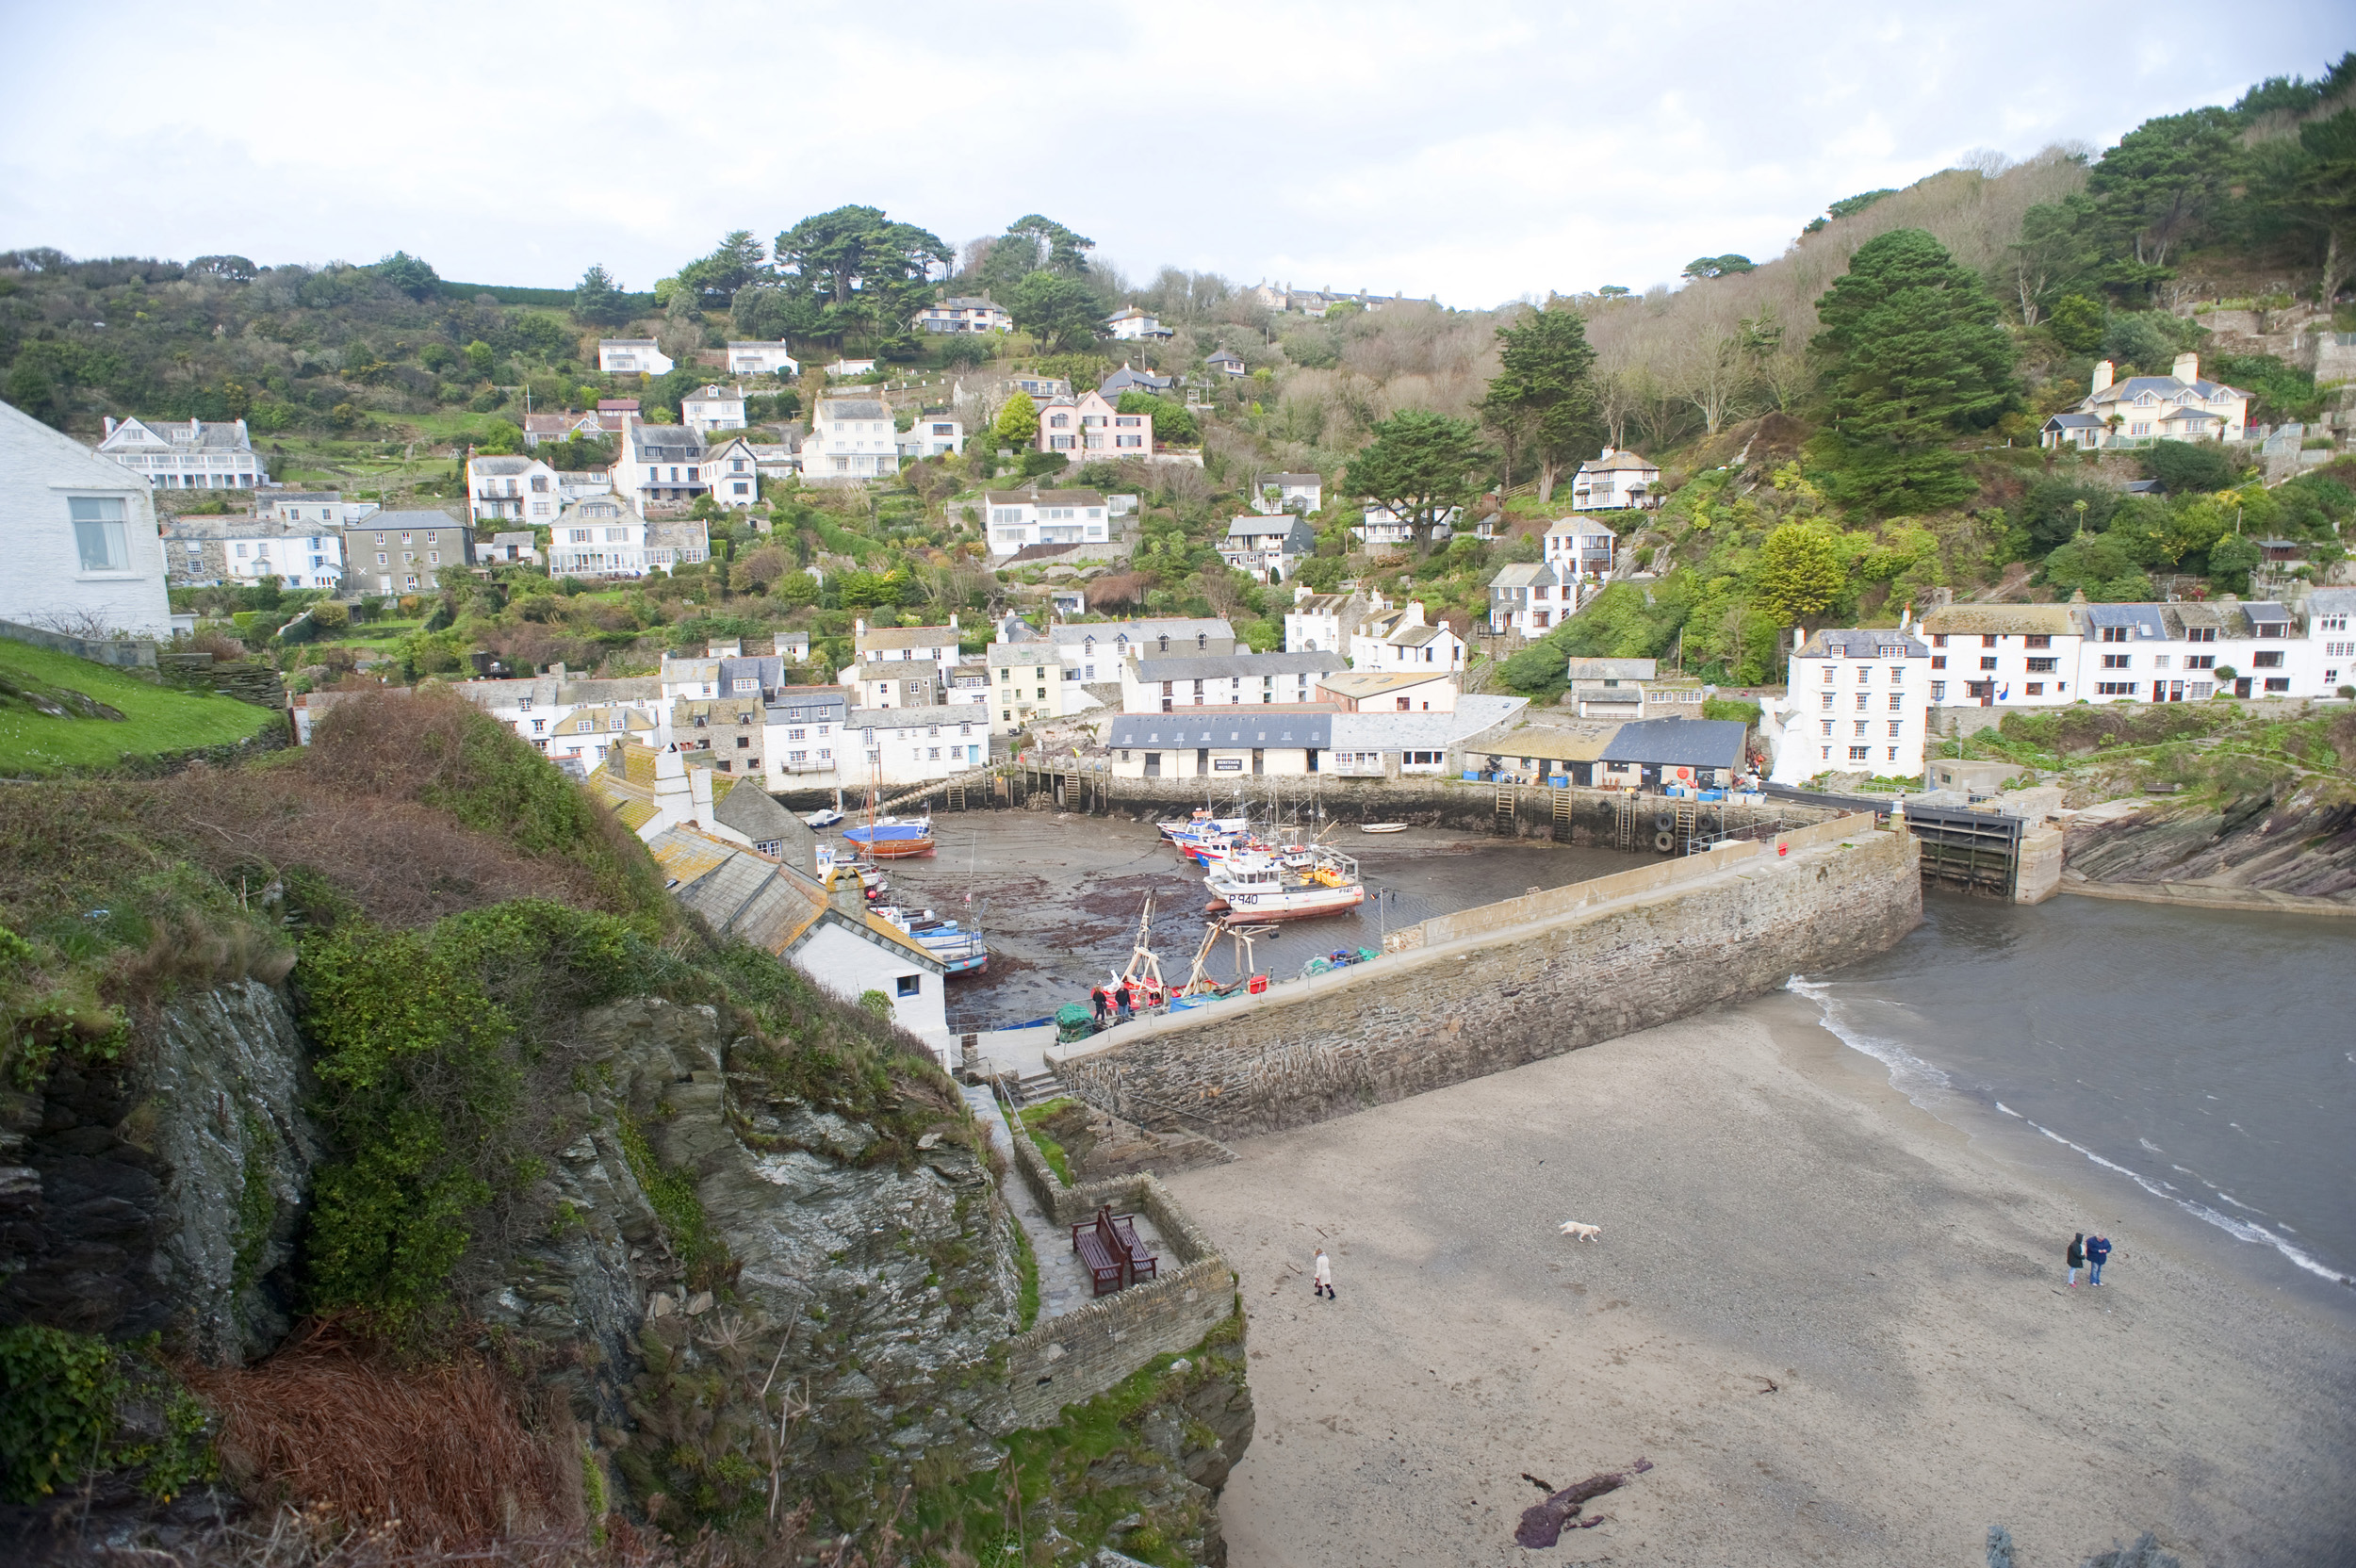 shelterd harbour at polperro, cornwall